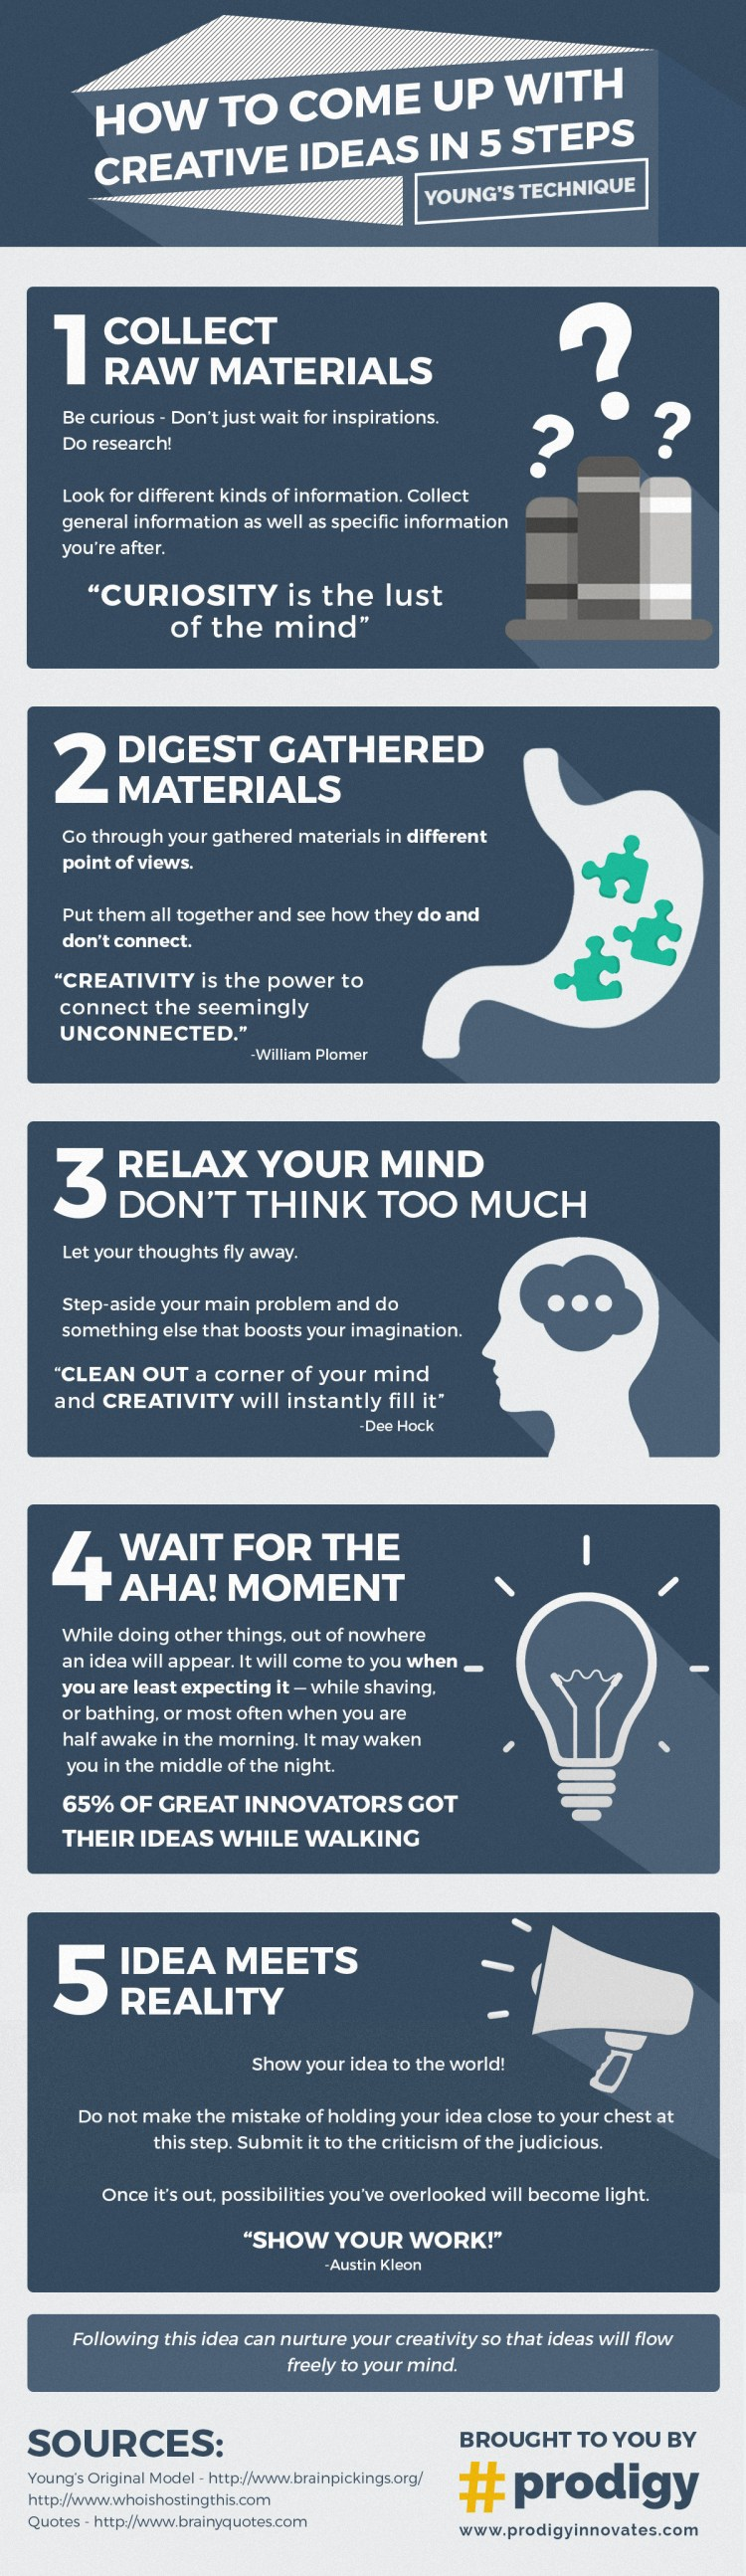 How-To-Come-Up-With-Creative-Ideas